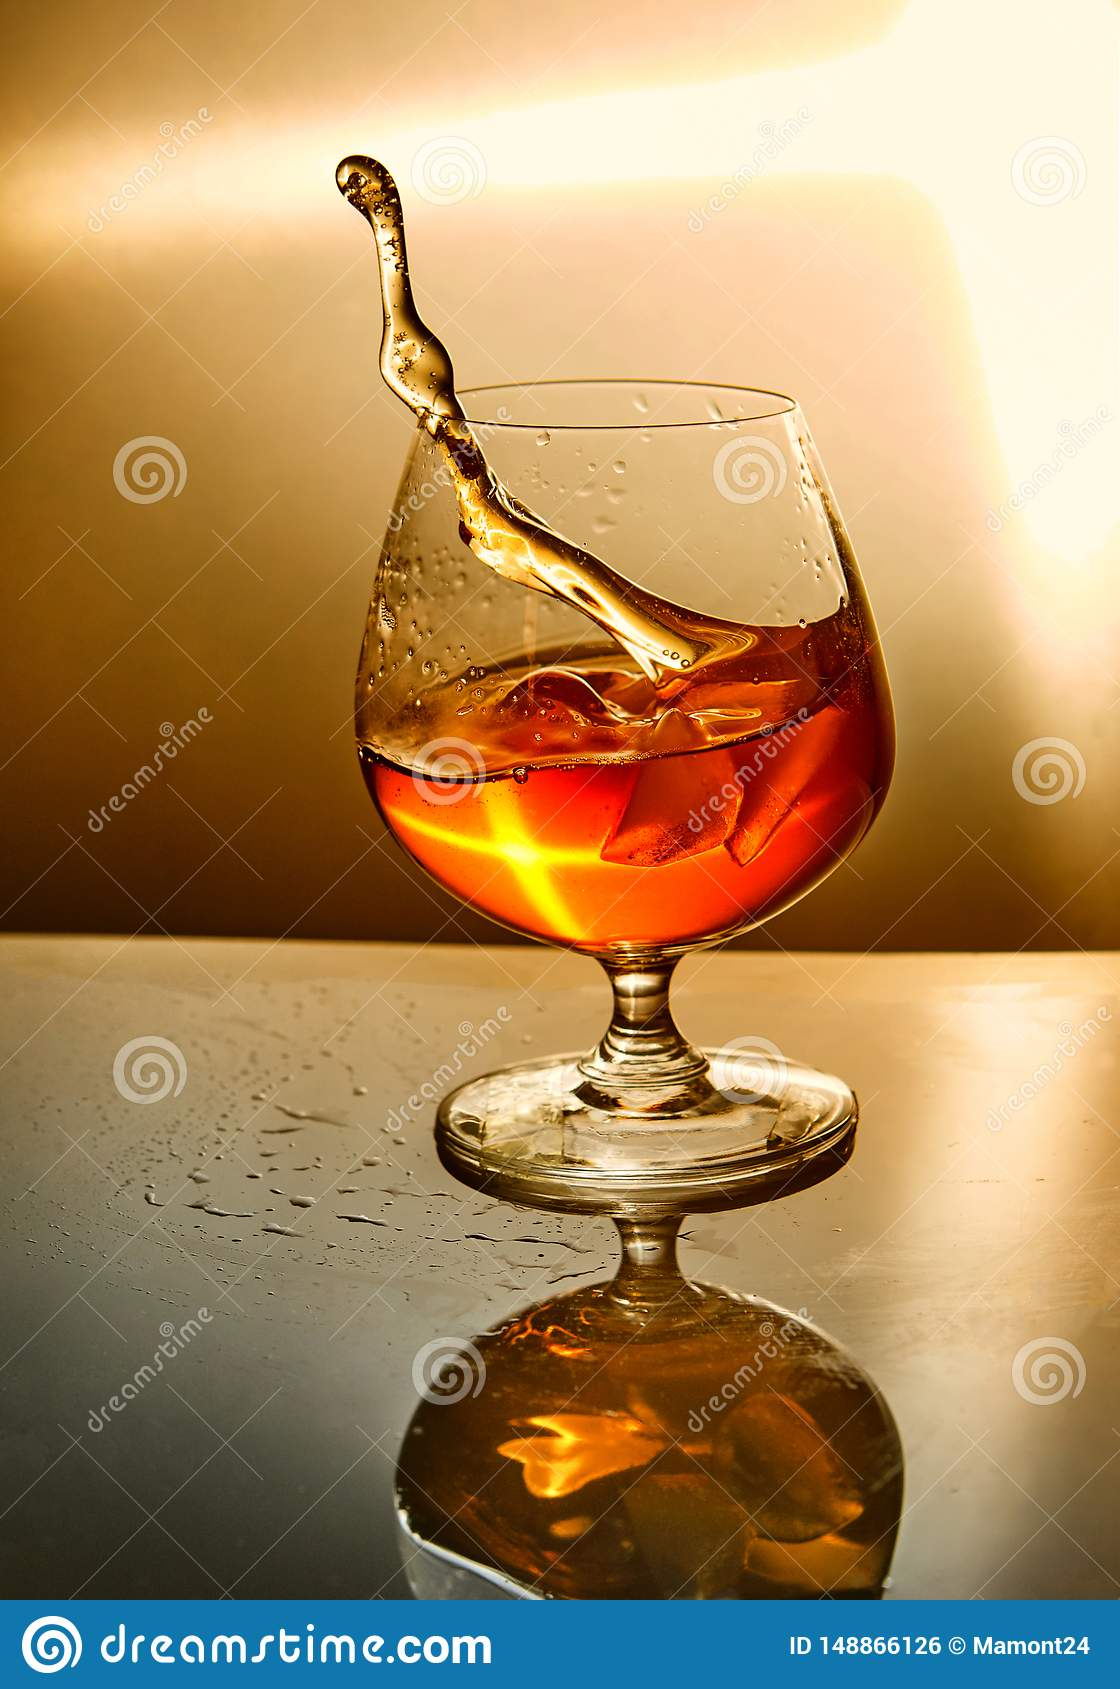 Glass of whiskey with a wave on an orange background